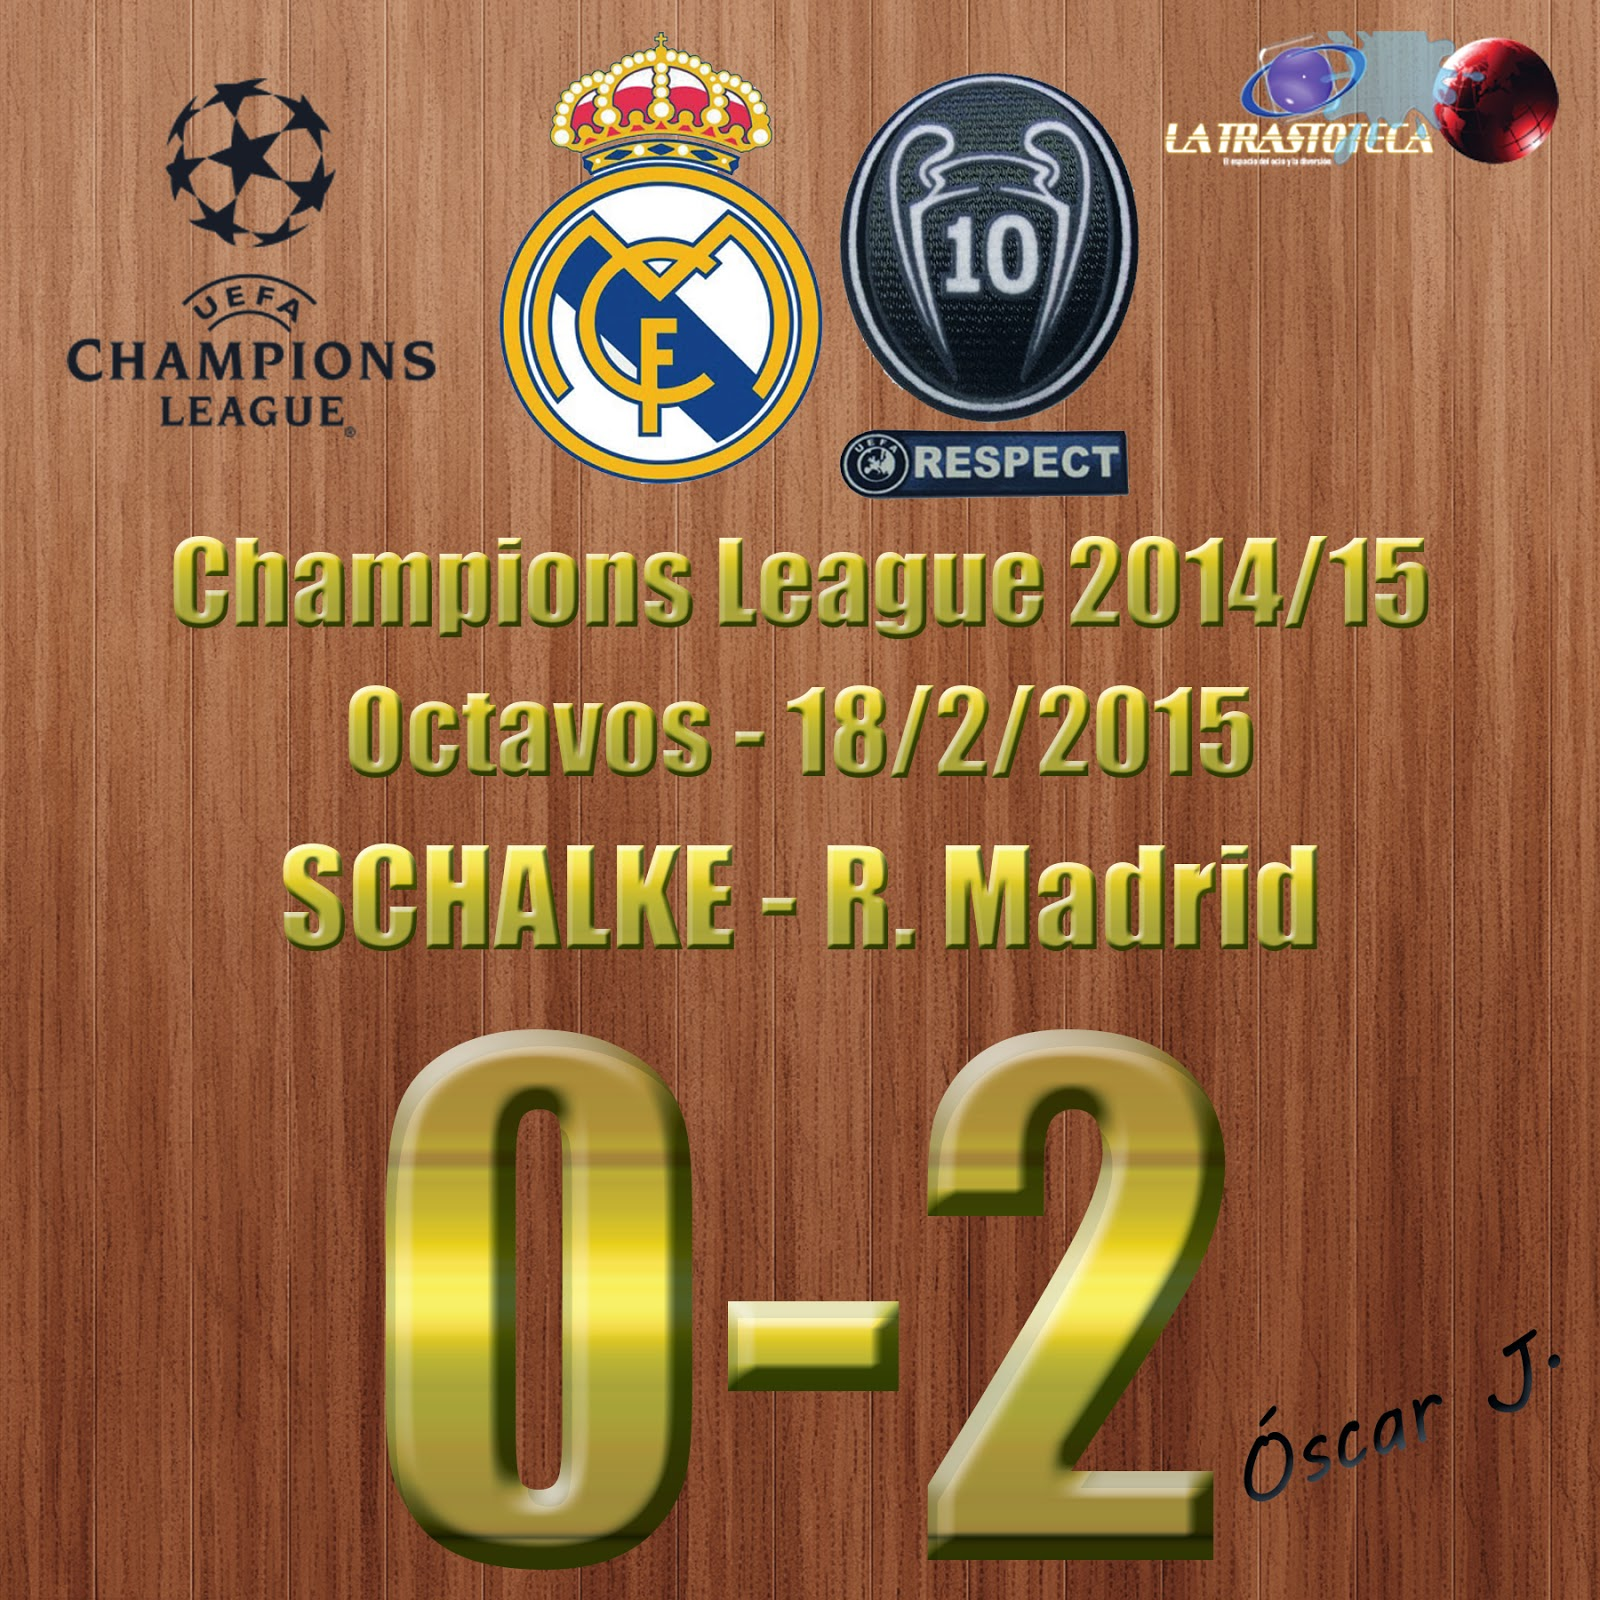 Marcelo (0-1) - Shalke 04 0-2 Real Madrid - Champions League 2014/15 - Octavos - (18/2/2014)